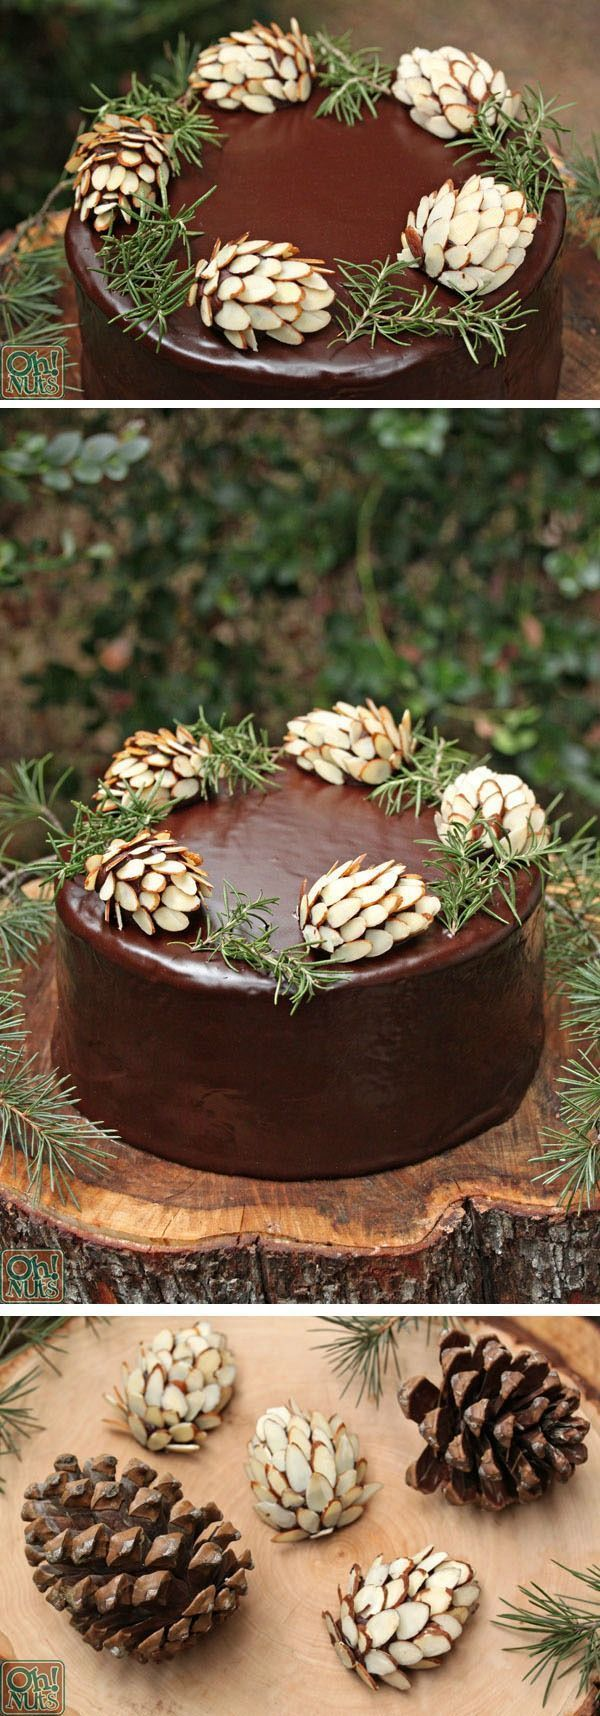 Chocolate Pine Cones made with chocolate fudge and almonds -beautiful!